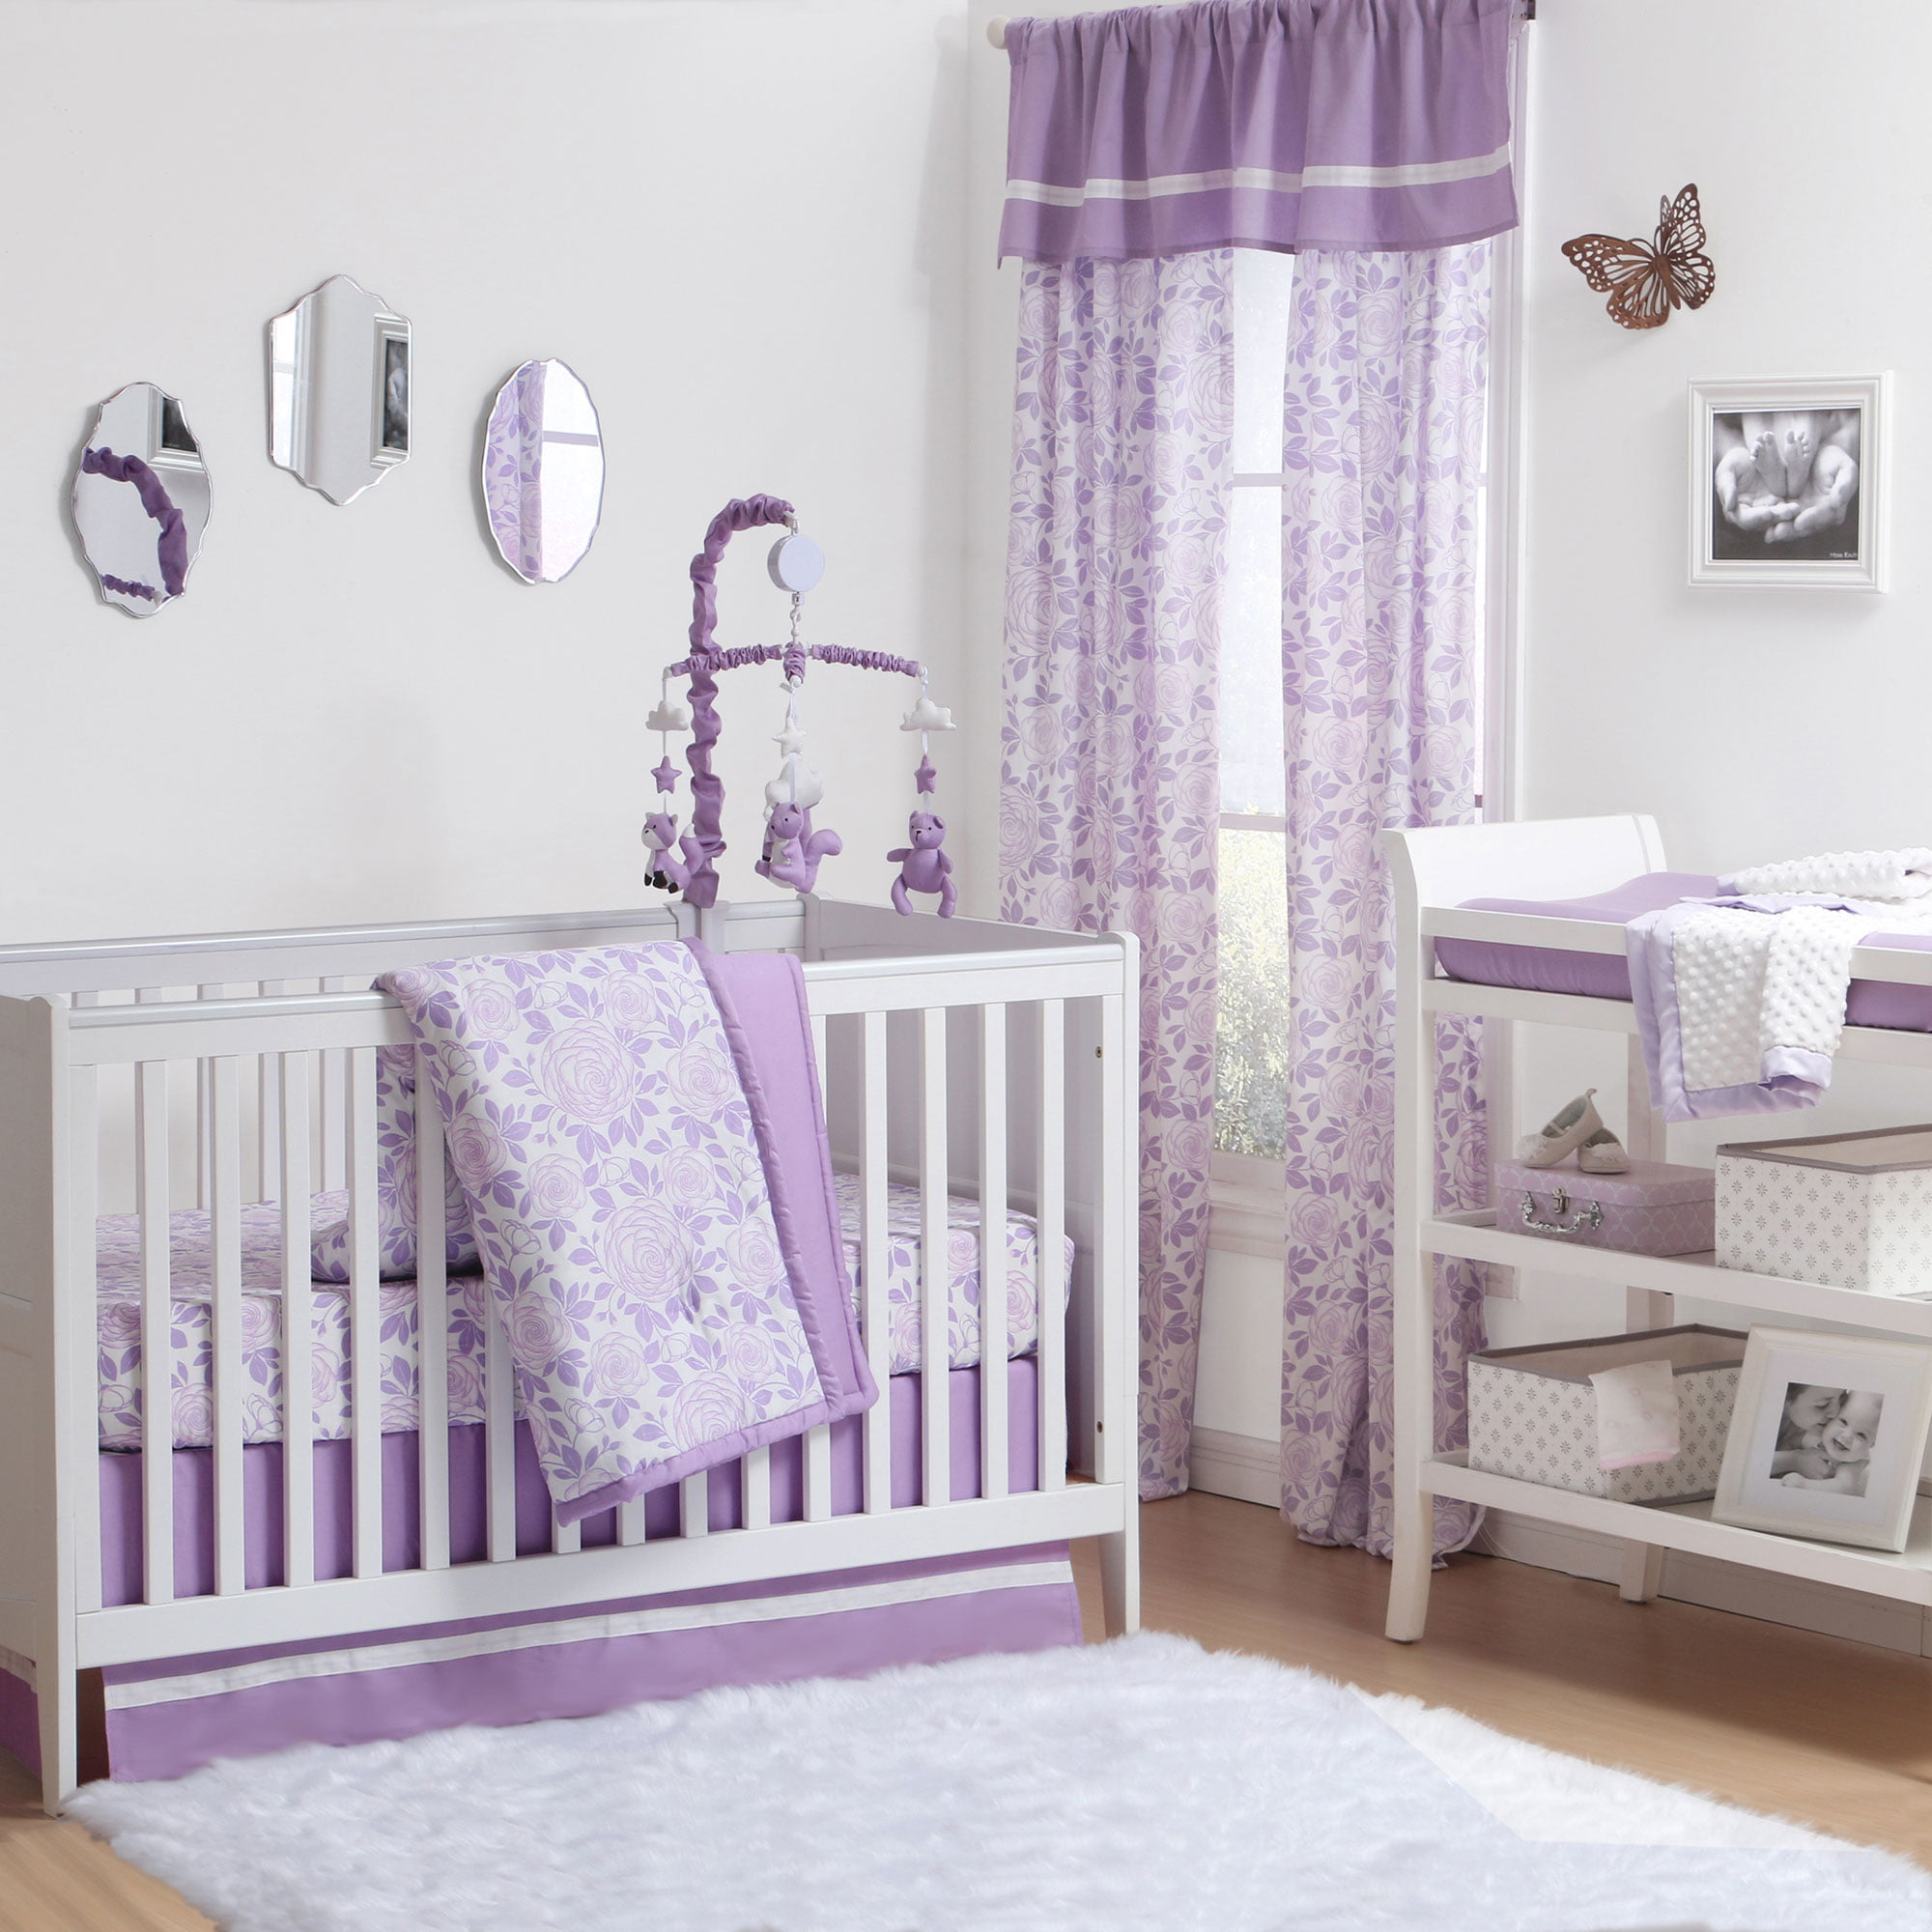 cribs sheets brody bedding baby nautica info r nautical foodhabits crib collection whale girl william us babies